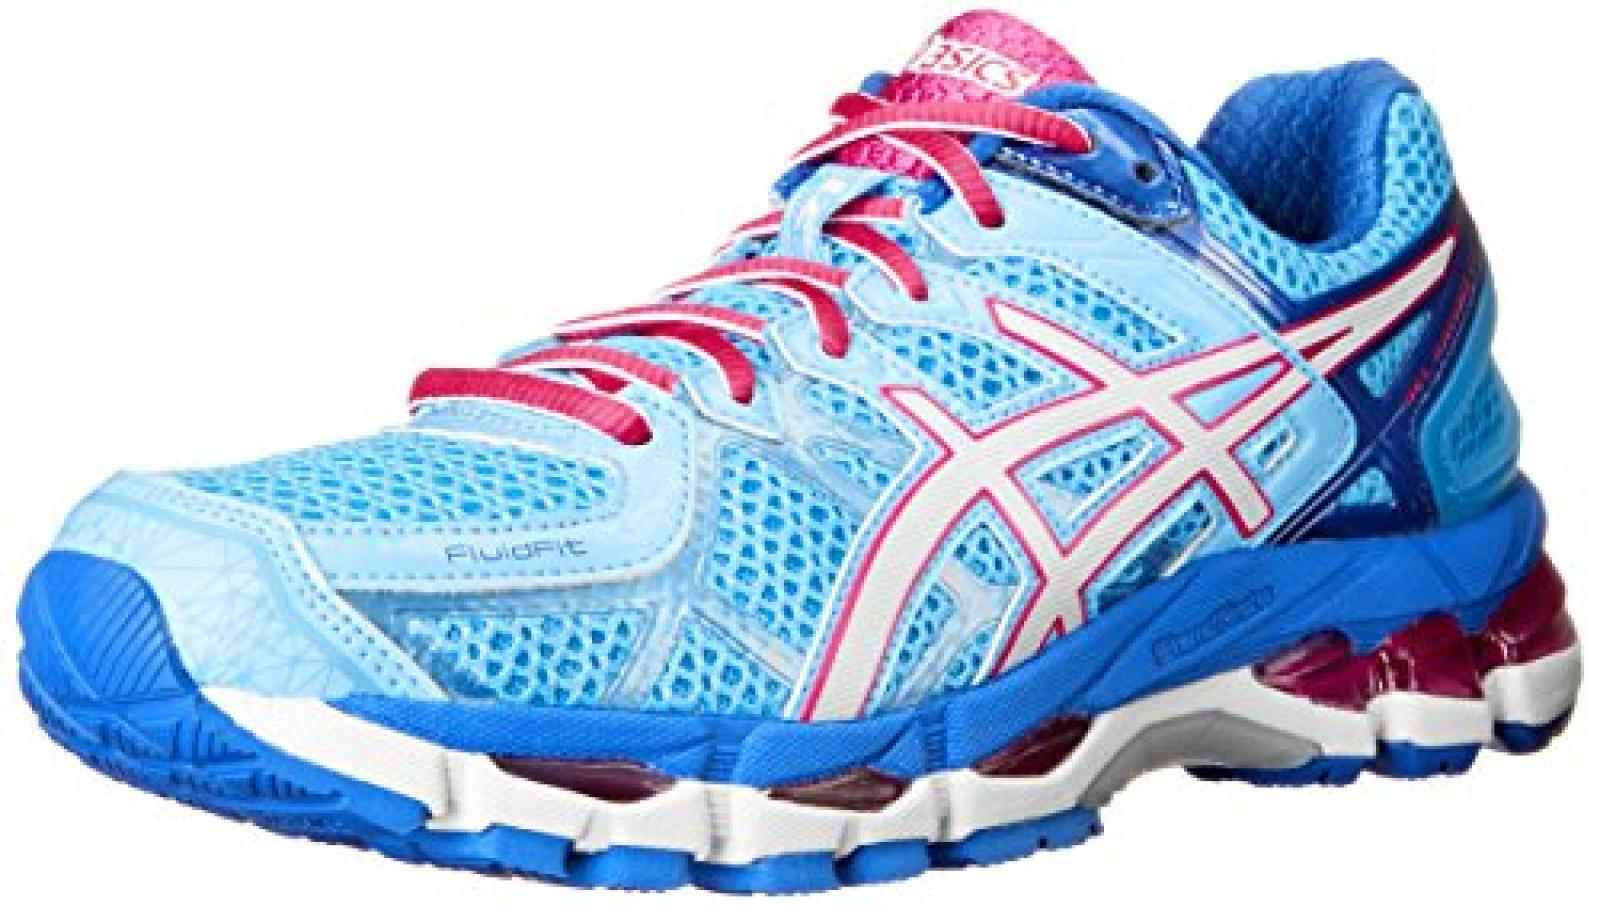 Asics - Frauen-Gel-Kayano 21 Schuhe, EUR: 36, Powder Blue/White/Hot Pink